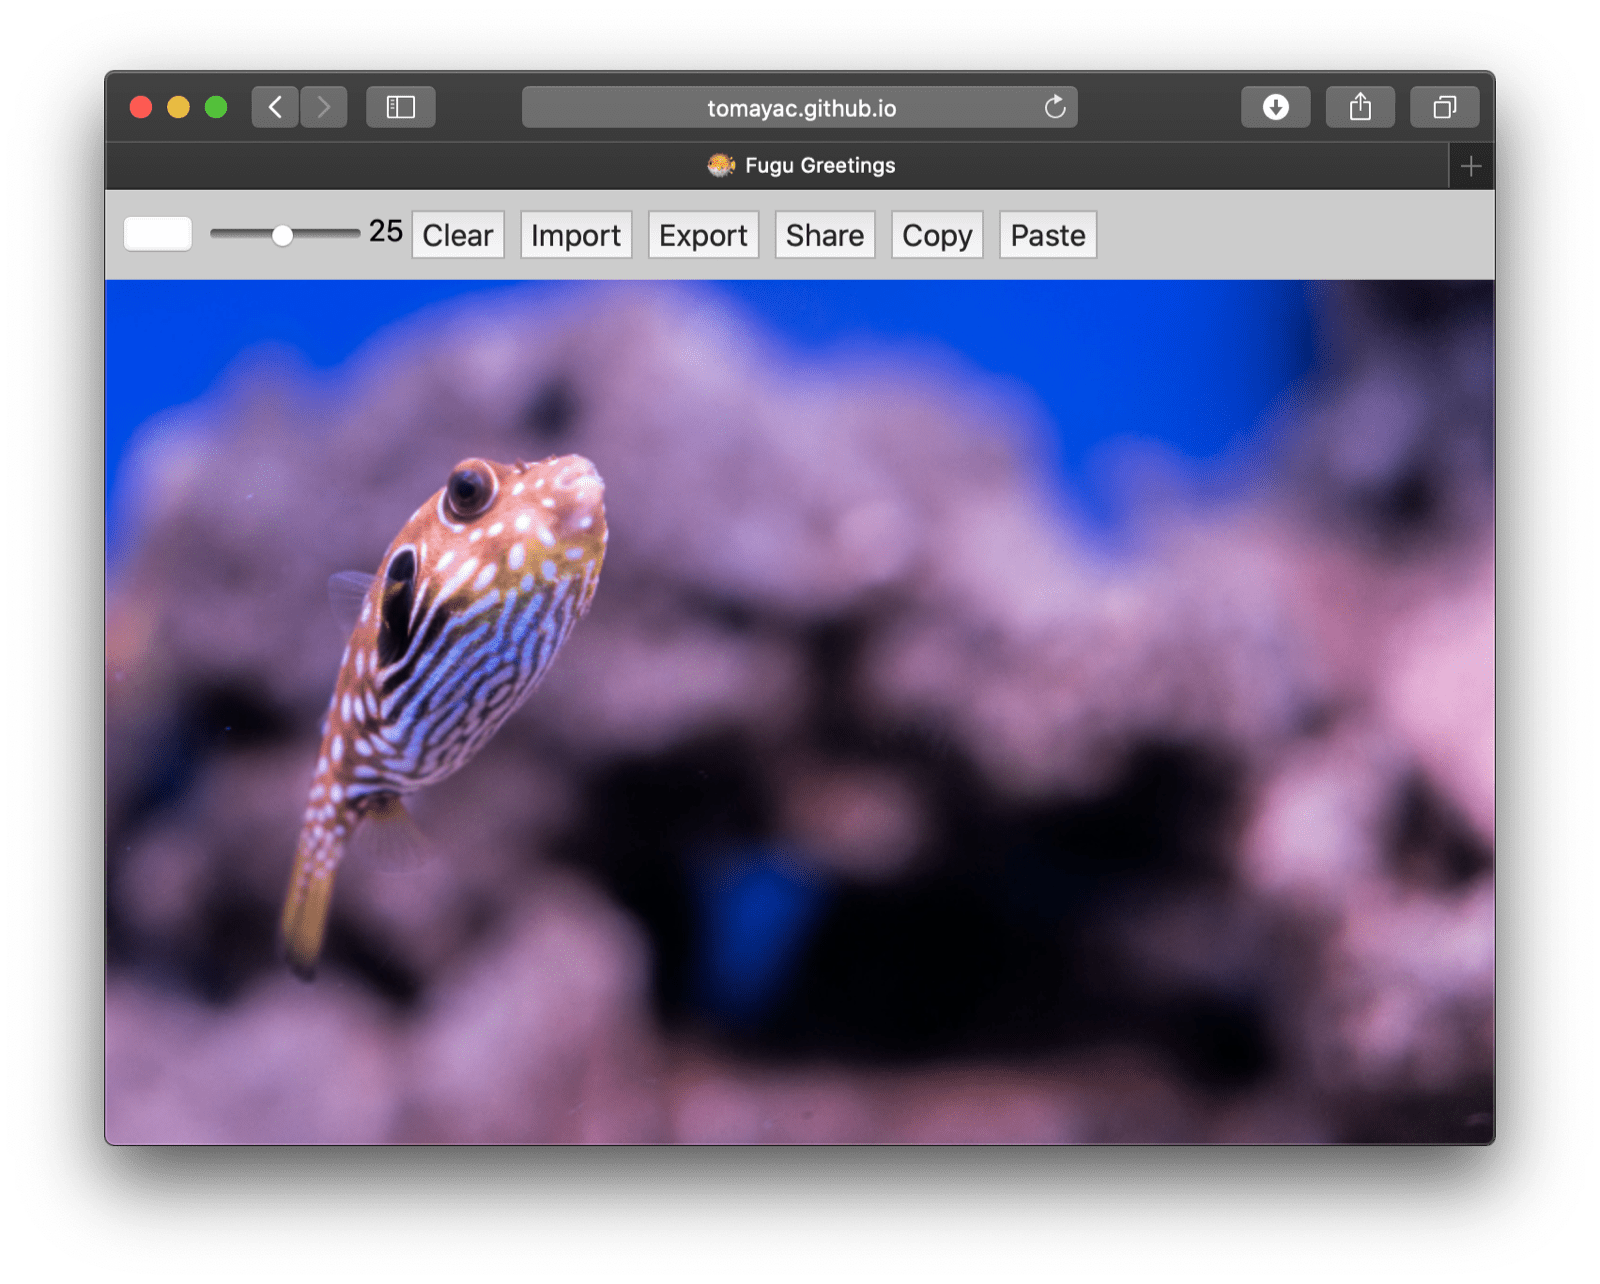 Fugu Greetings running on desktop Safari, showing fewer available features.